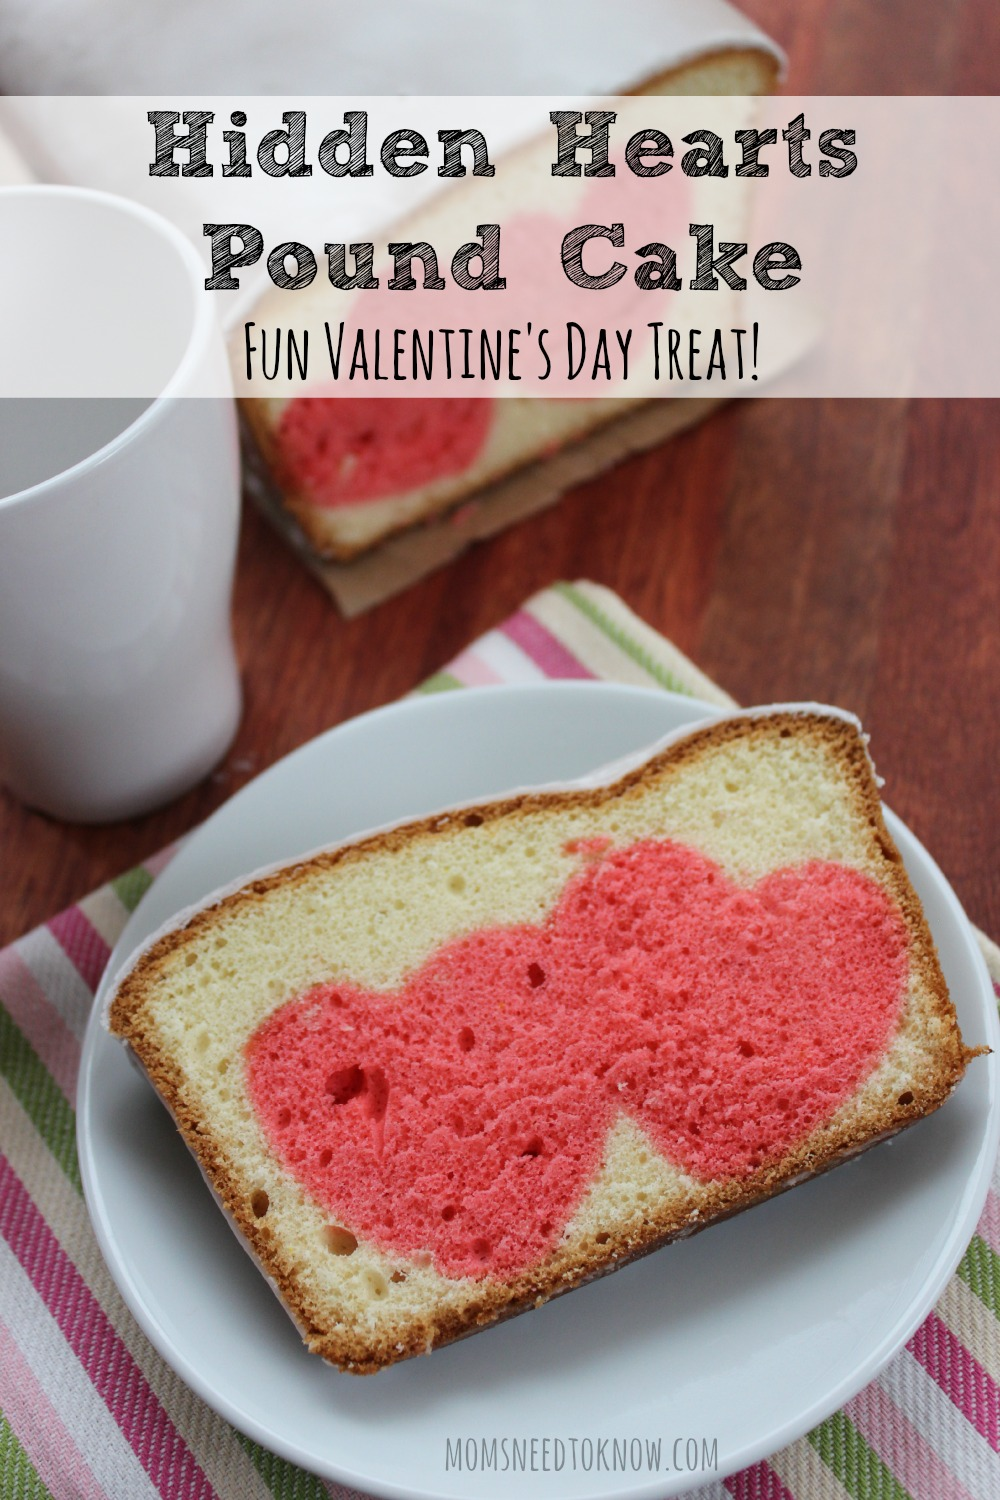 Hidden Hearts Pound Cake for Valentines Day